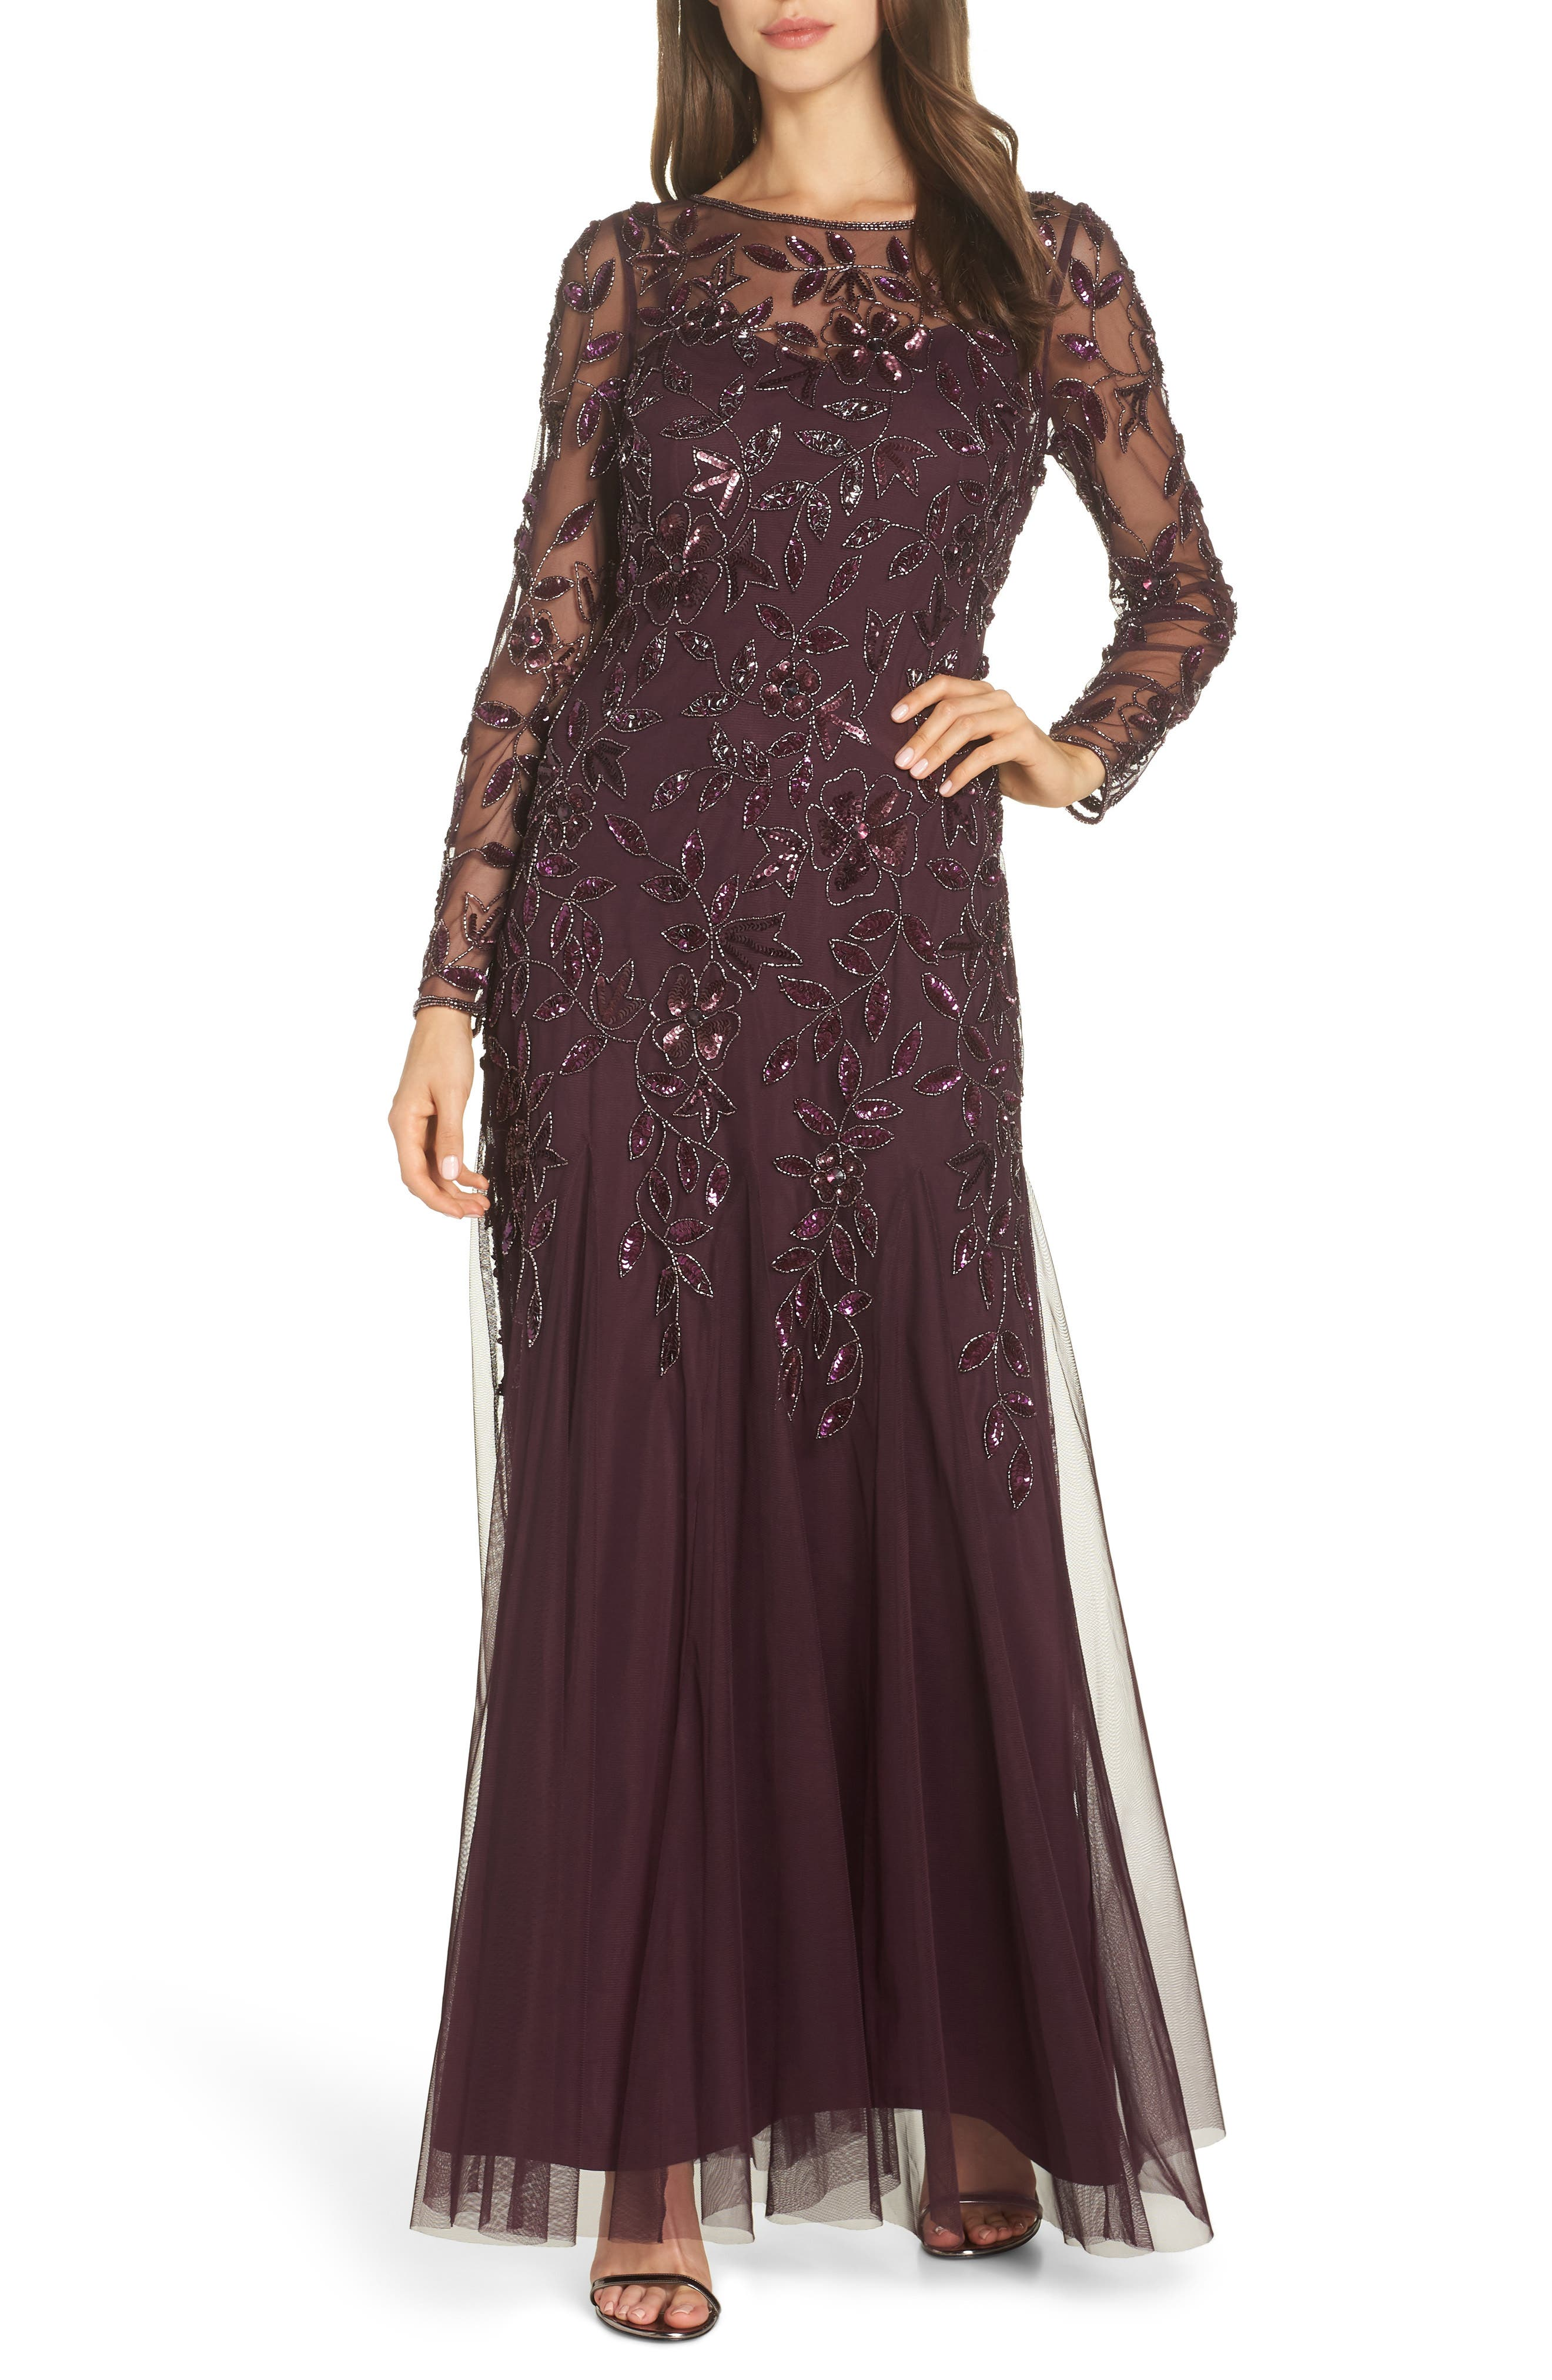 ADRIANNA PAPELL Floral Bead Embellished Gown in Night Plum